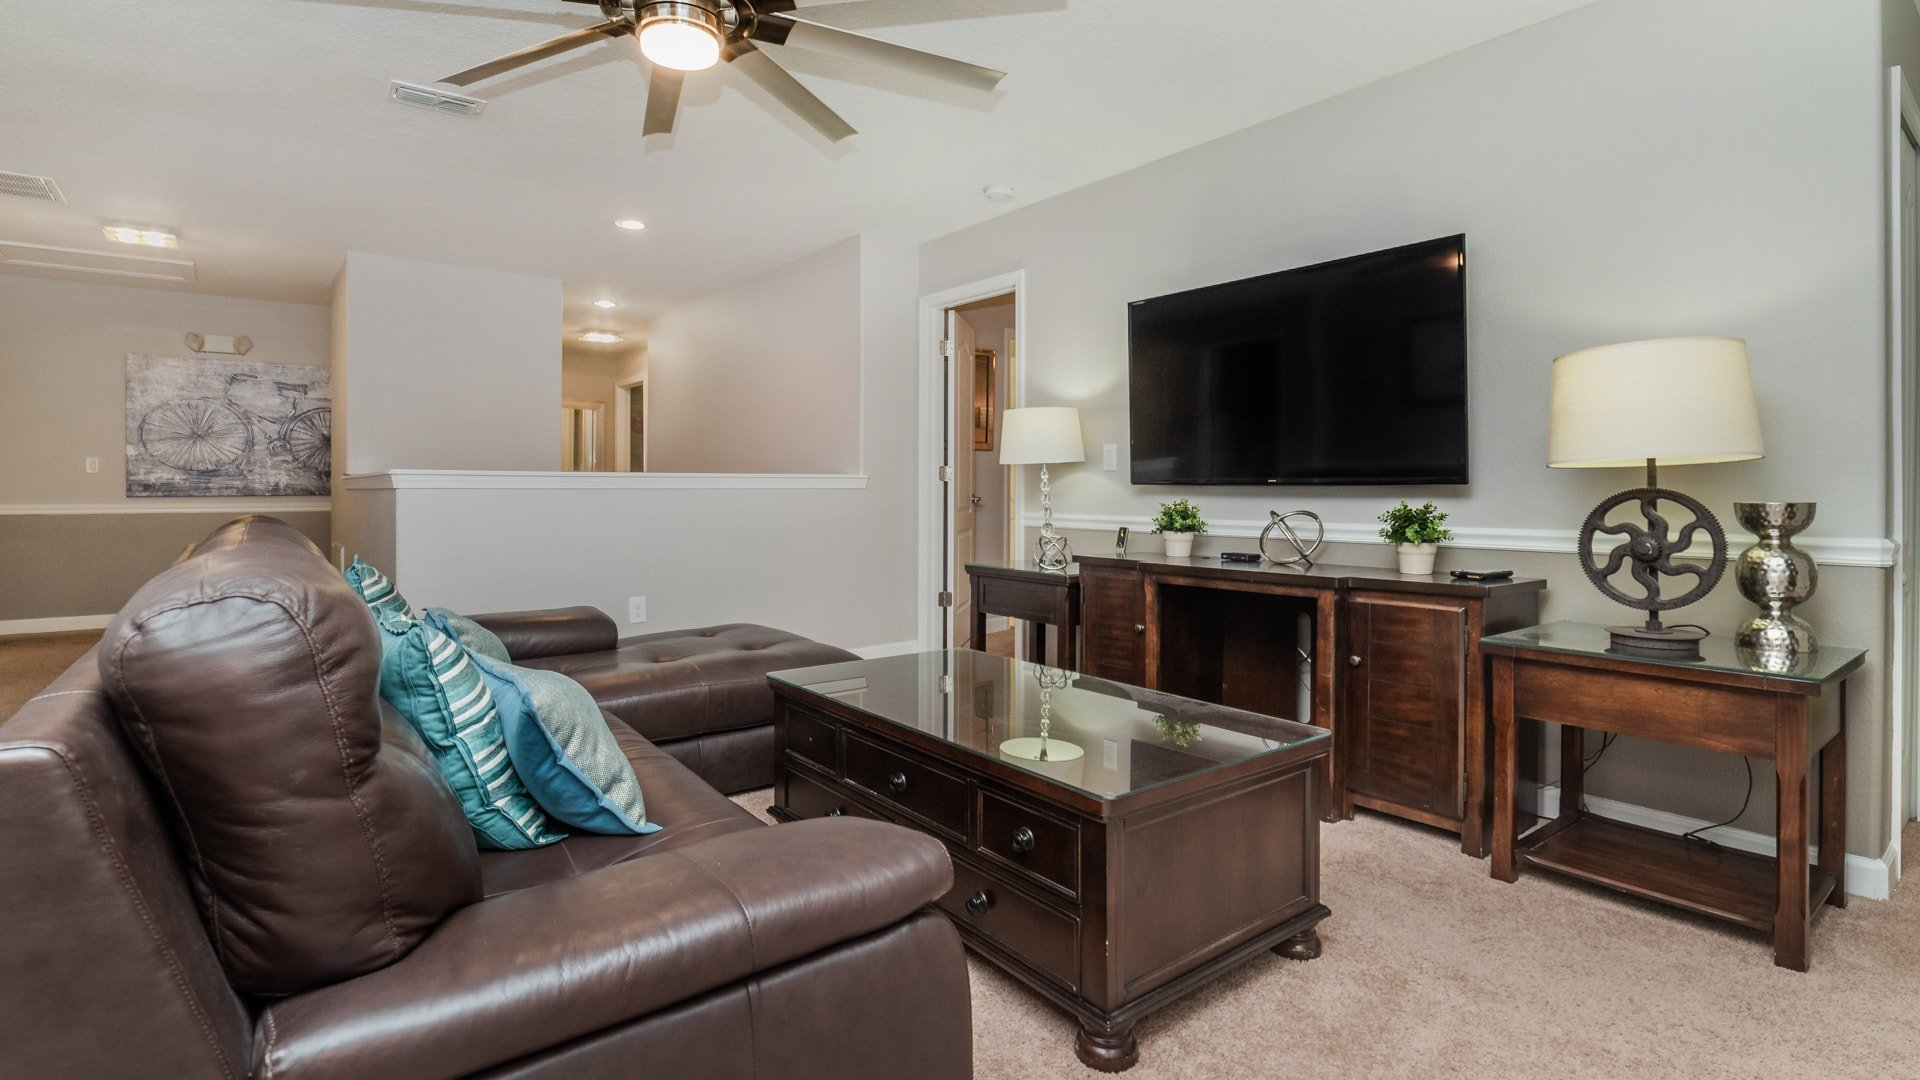 1492 Moon Valley Drive-209843